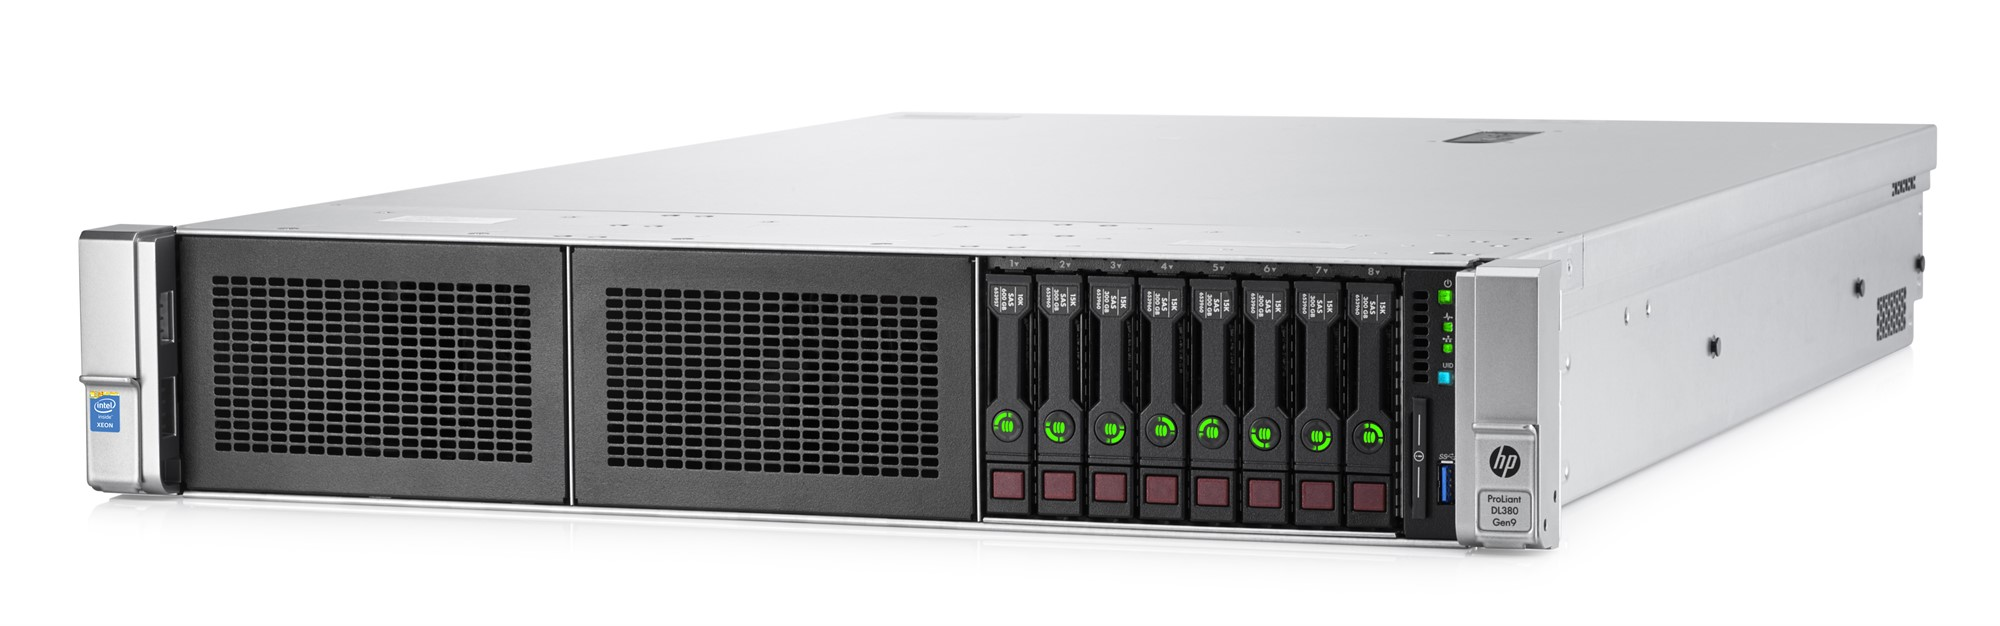 HPE 719064-B21 PROLIANT DL380 GEN9